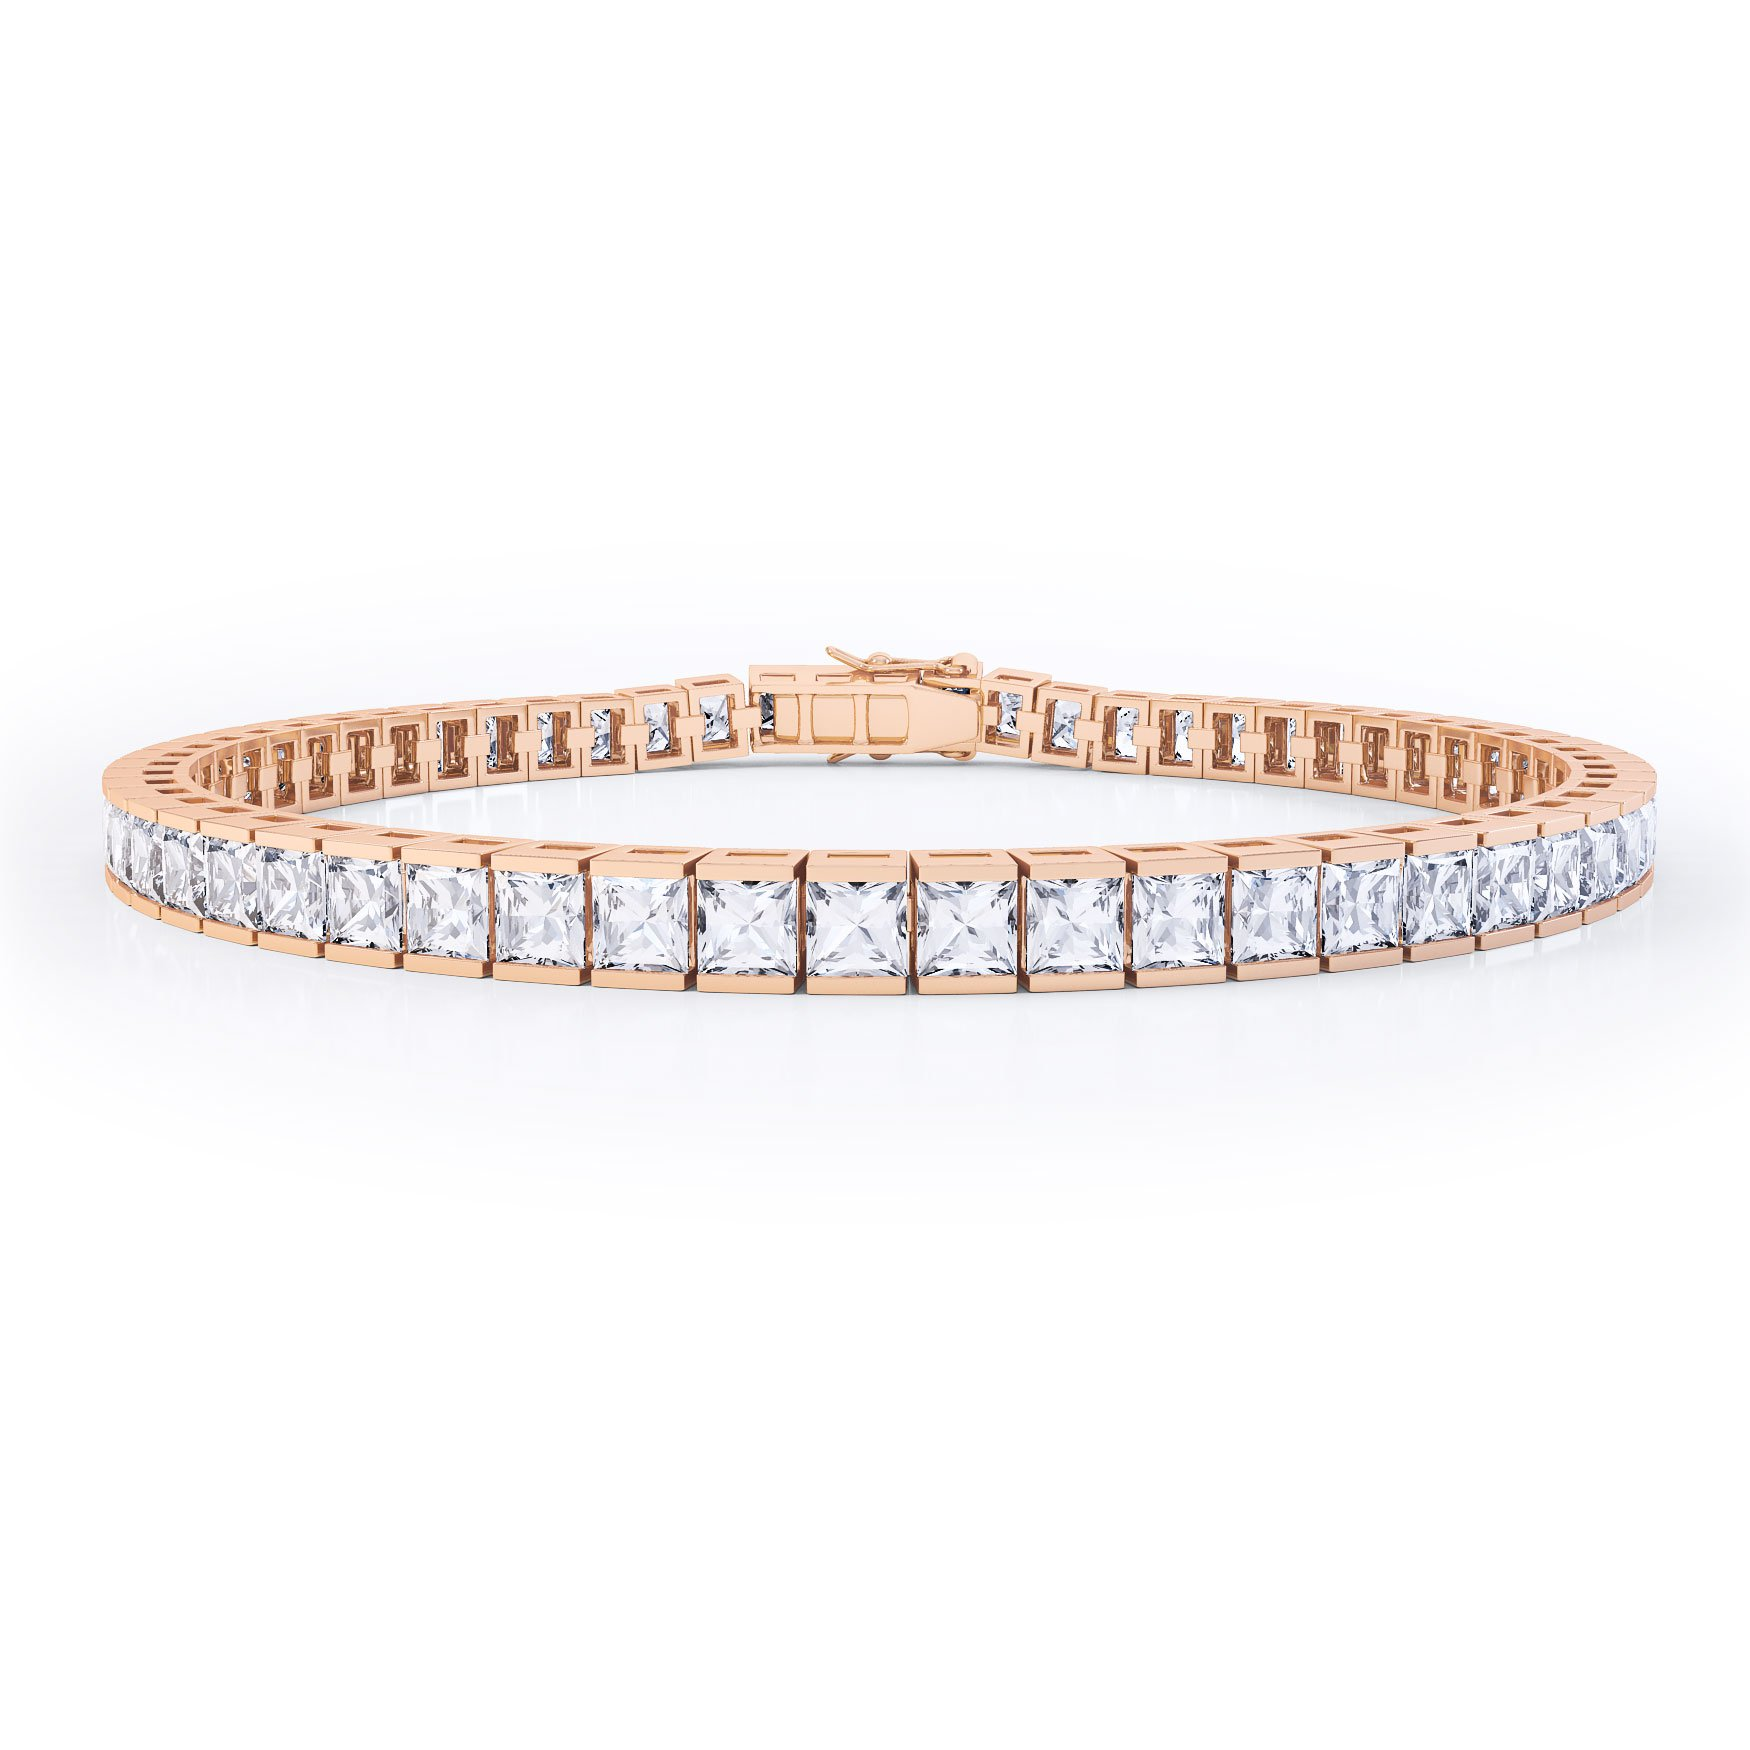 clear diamond jewelry cz cut gold bridal bracelet round carat wedding rose classic cassidy fashion cubic faux zirconia crystal tennis bridesmaid products